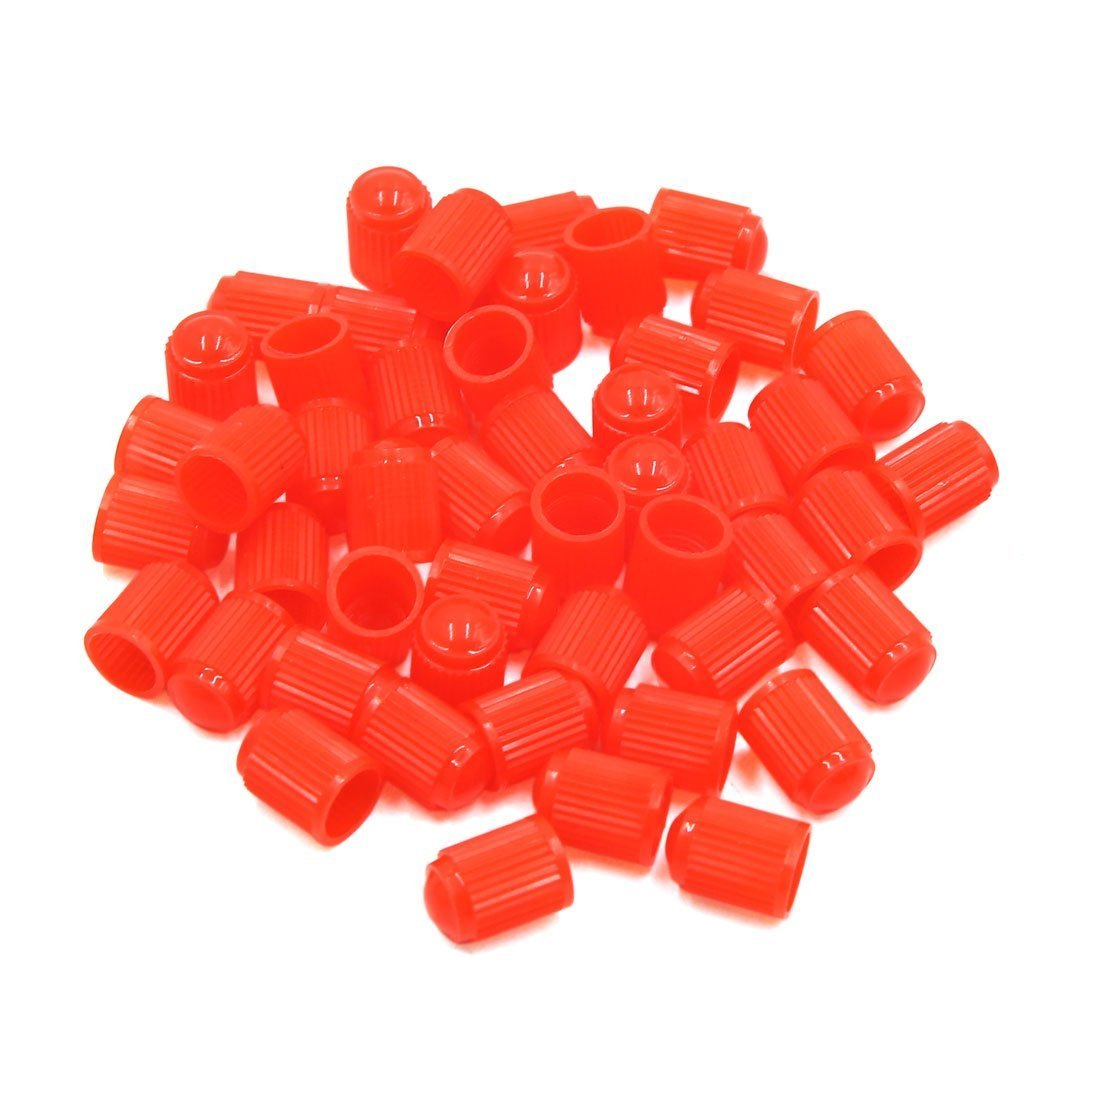 80 Pcs Bike and Bicycle Trucks YFMD Multicolor Plastic Tyre Valve Dust Caps for Car Motorbike